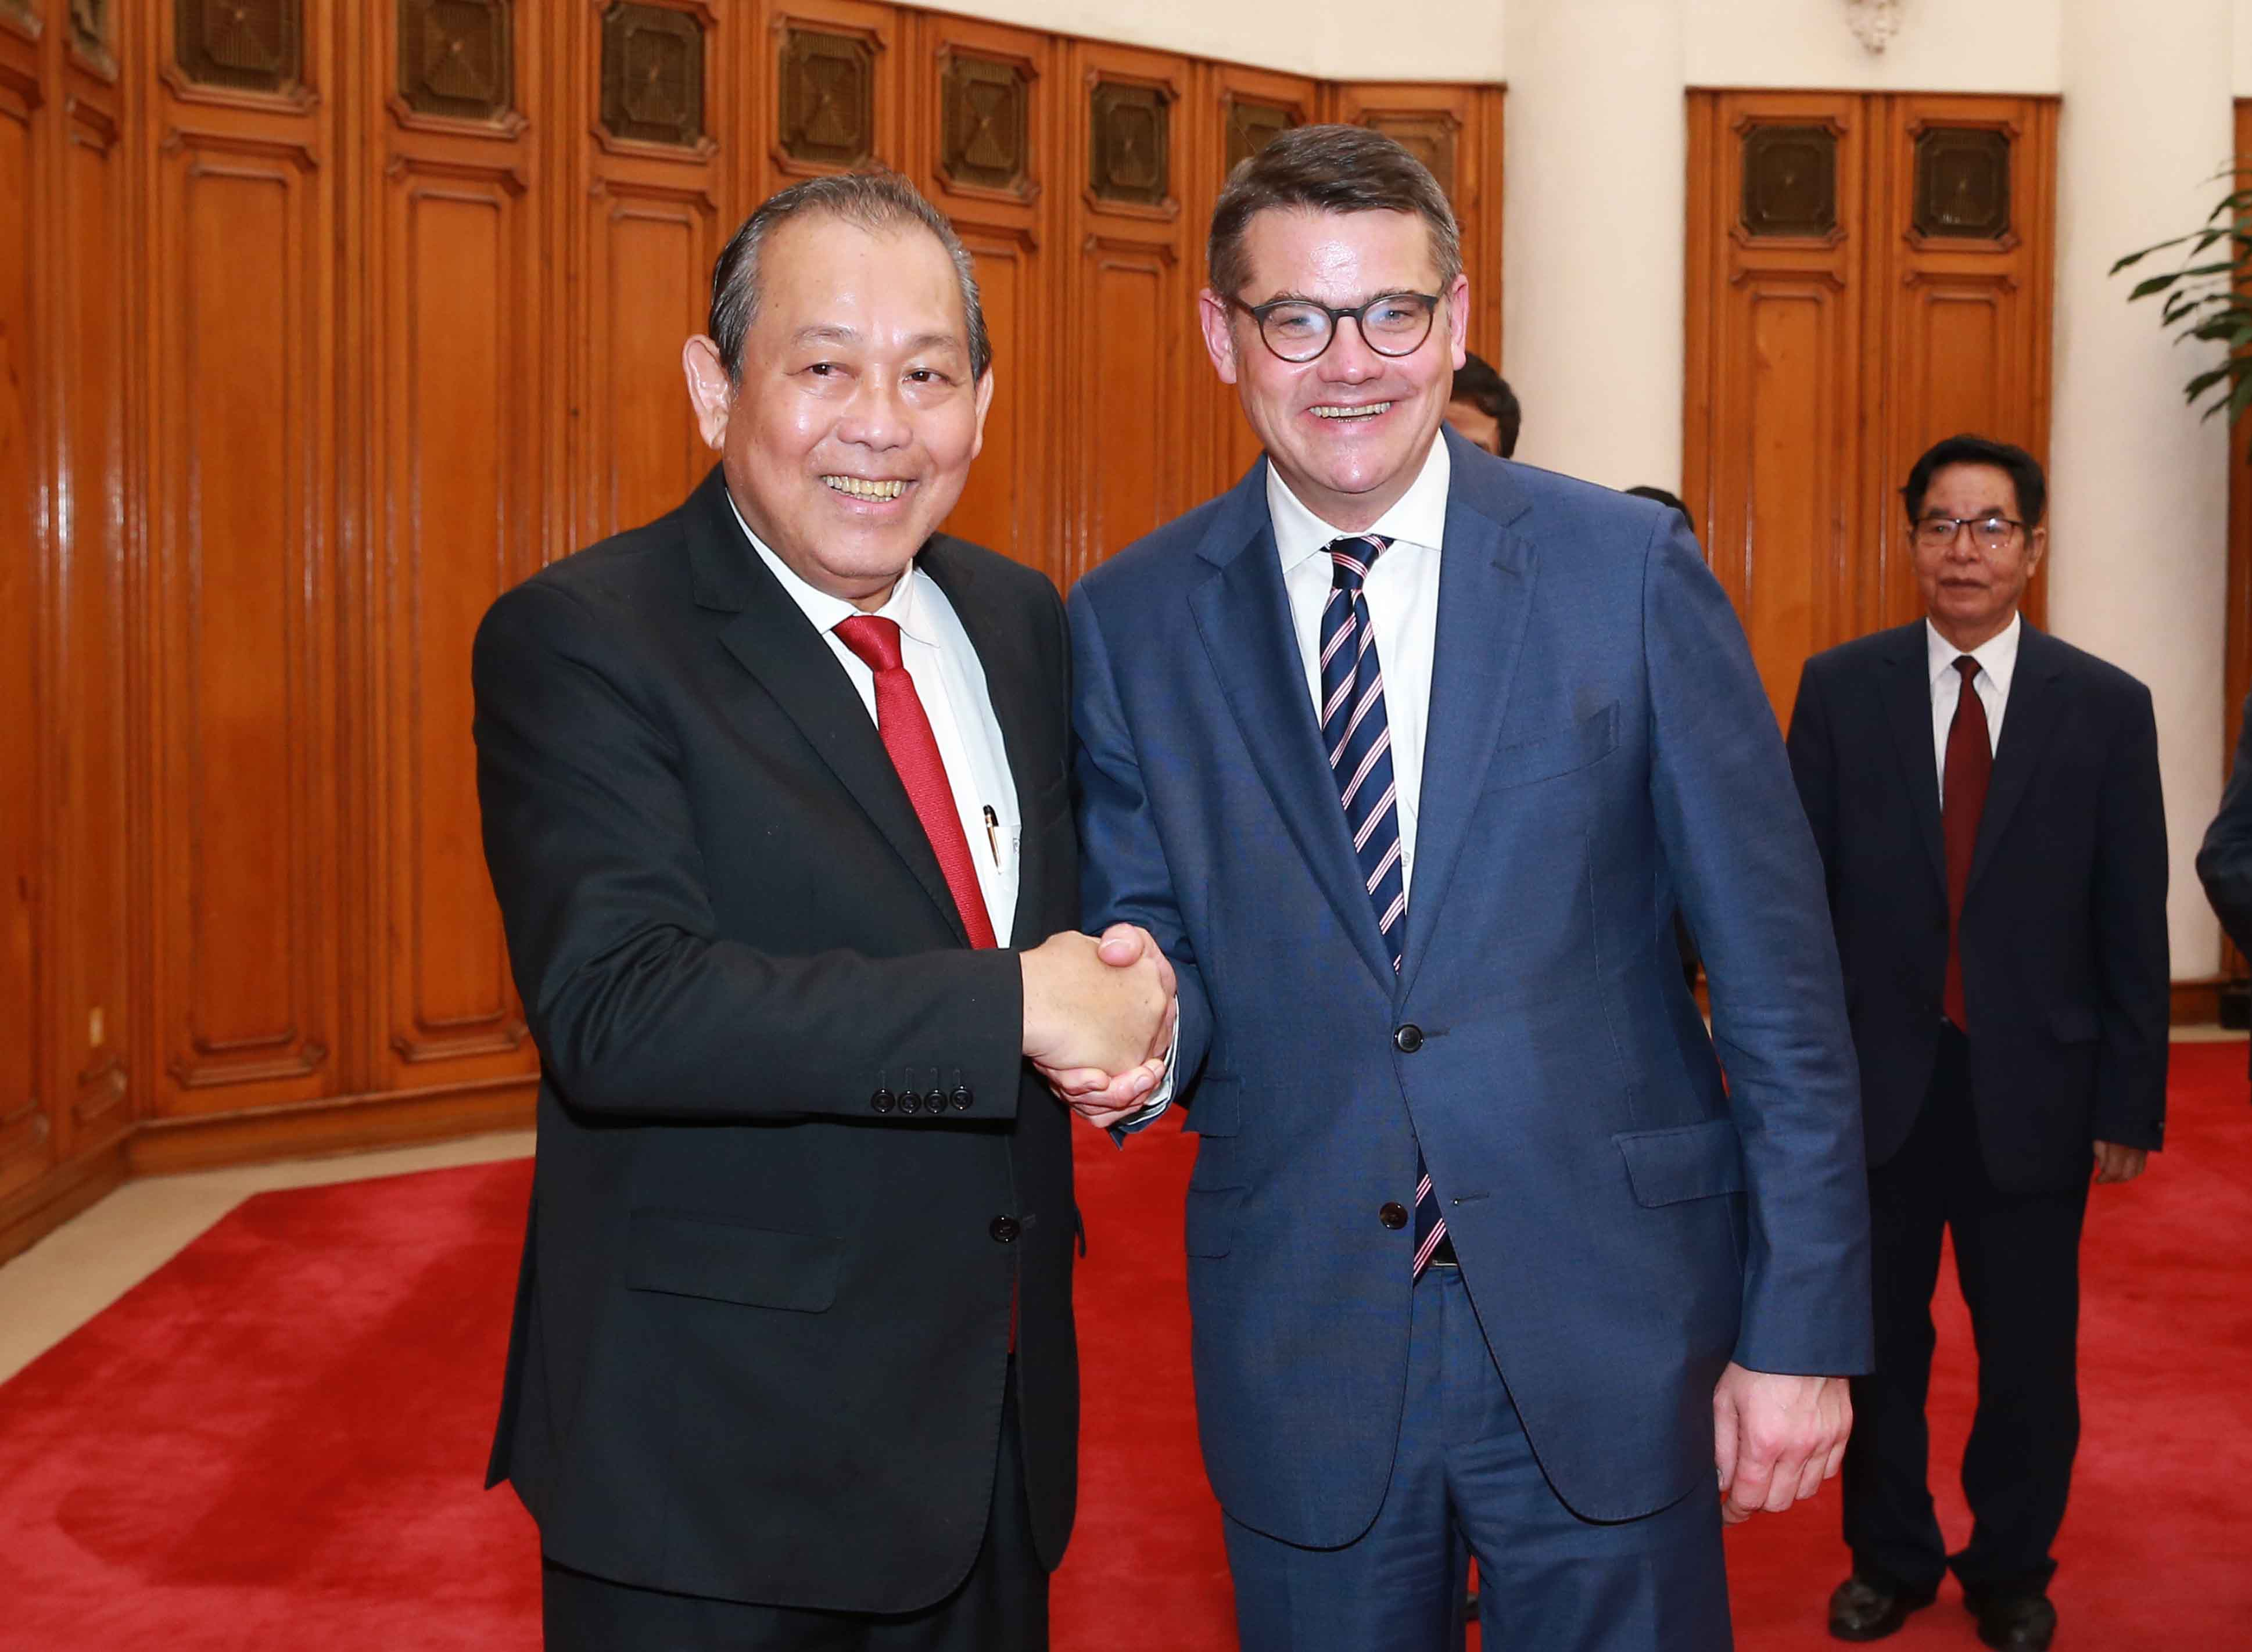 Promoting economic, trade cooperation between Vietnam and Germany